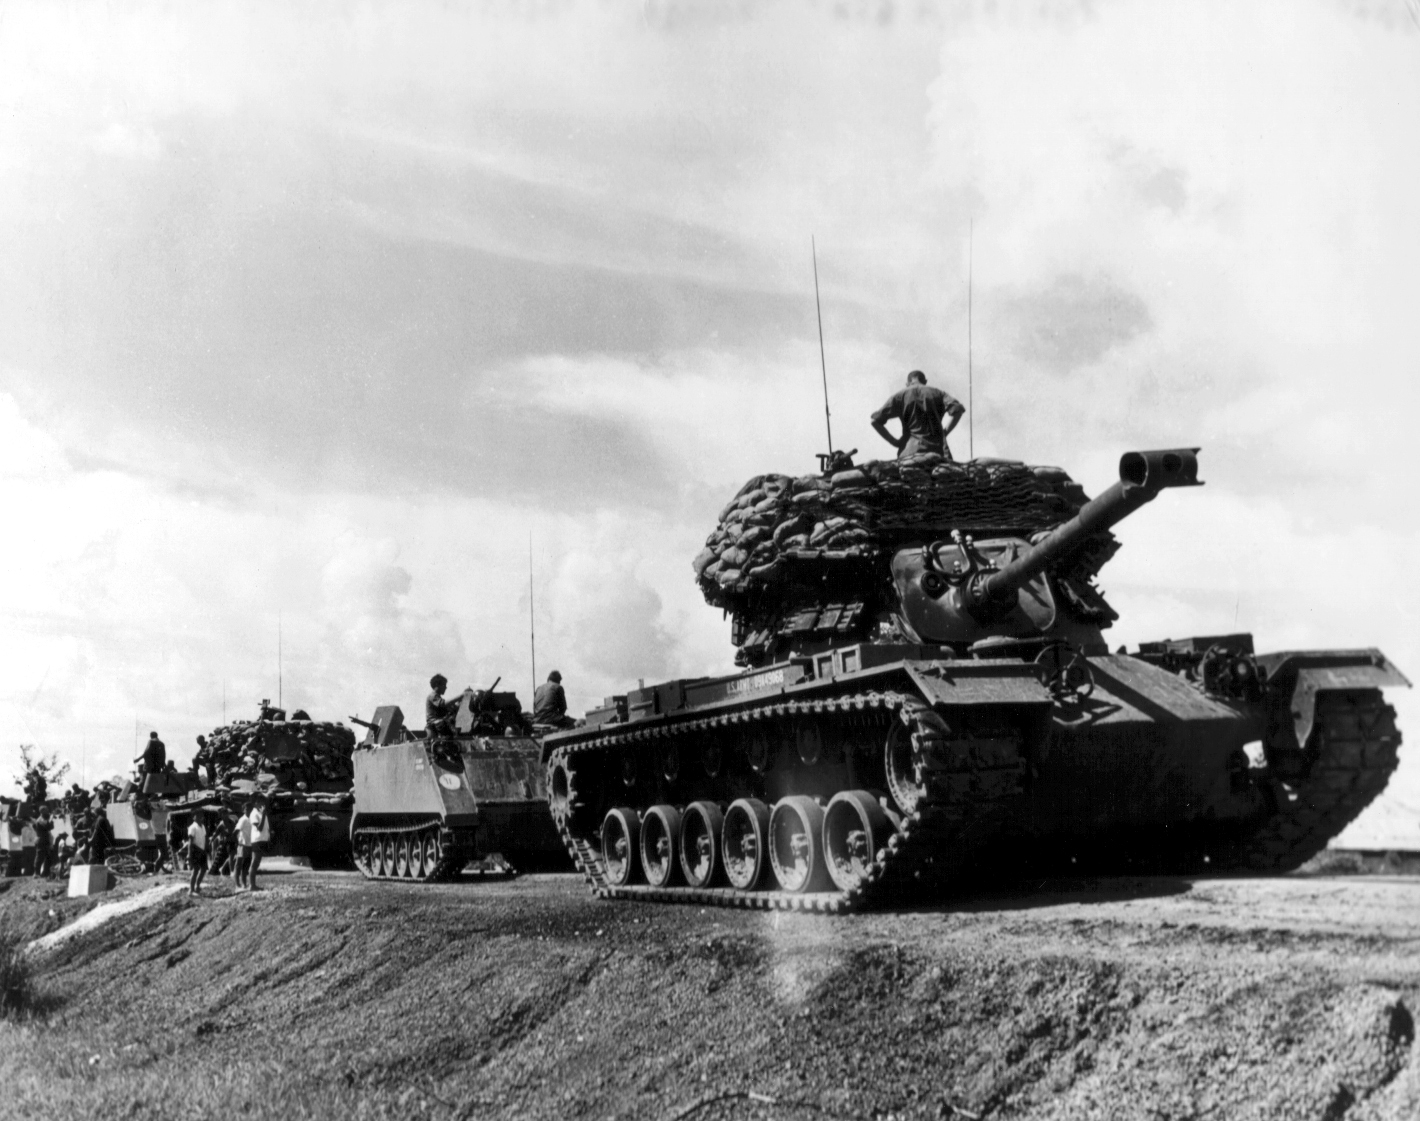 https://upload.wikimedia.org/wikipedia/commons/0/0b/ACAV_and_M48_Convoy_Vietnam_War.jpg